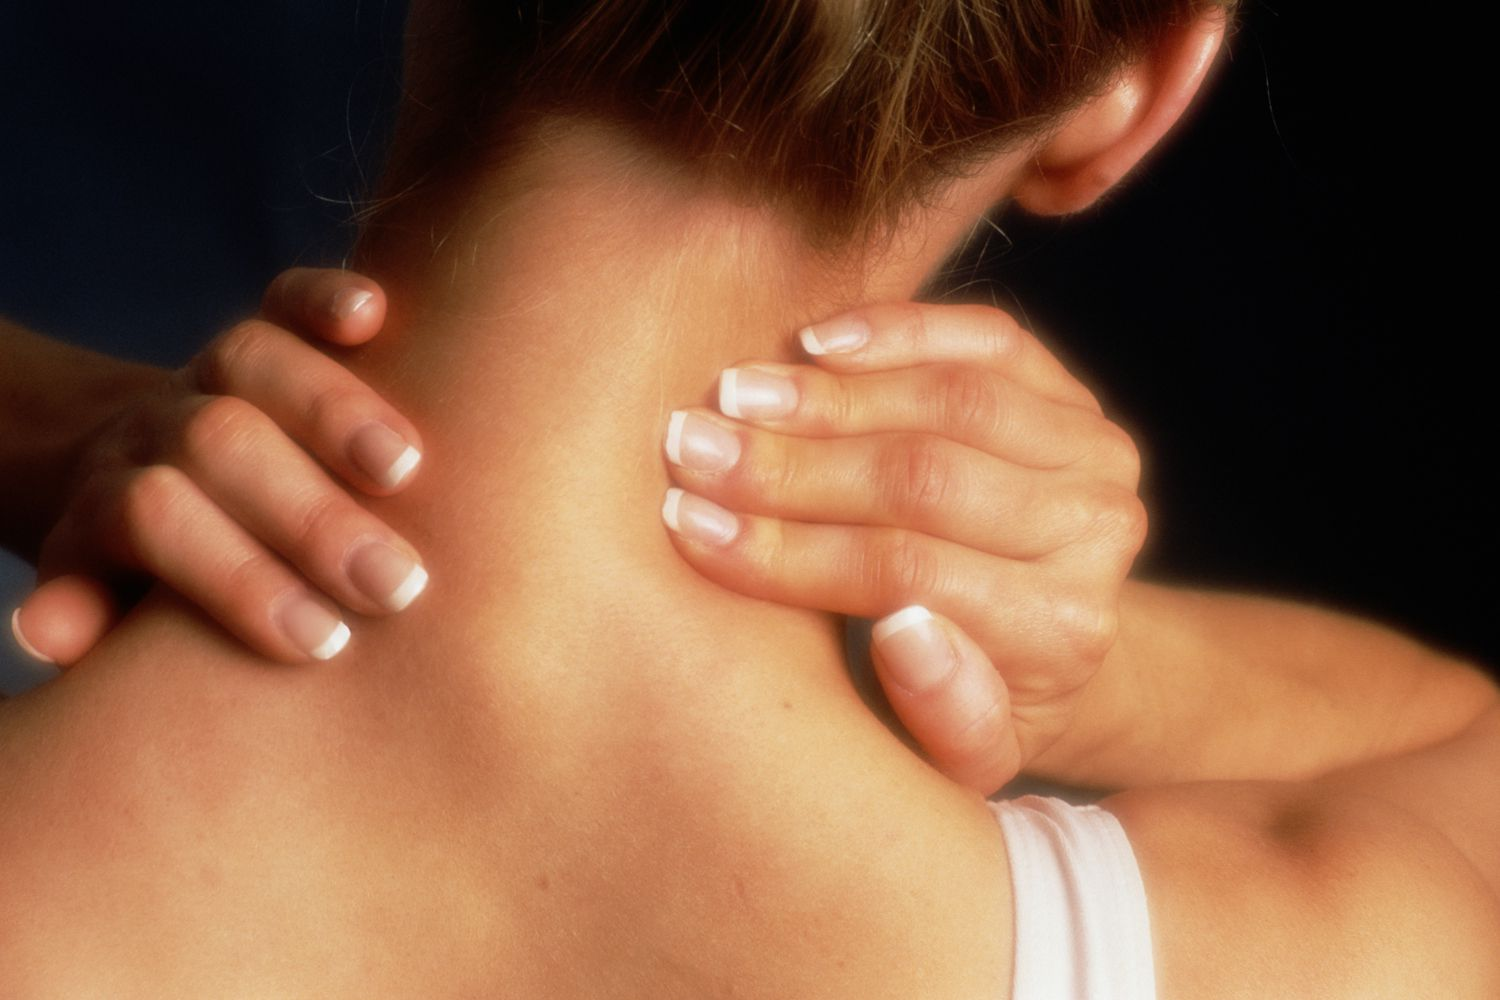 What Does Nerve Pain Feel Like?